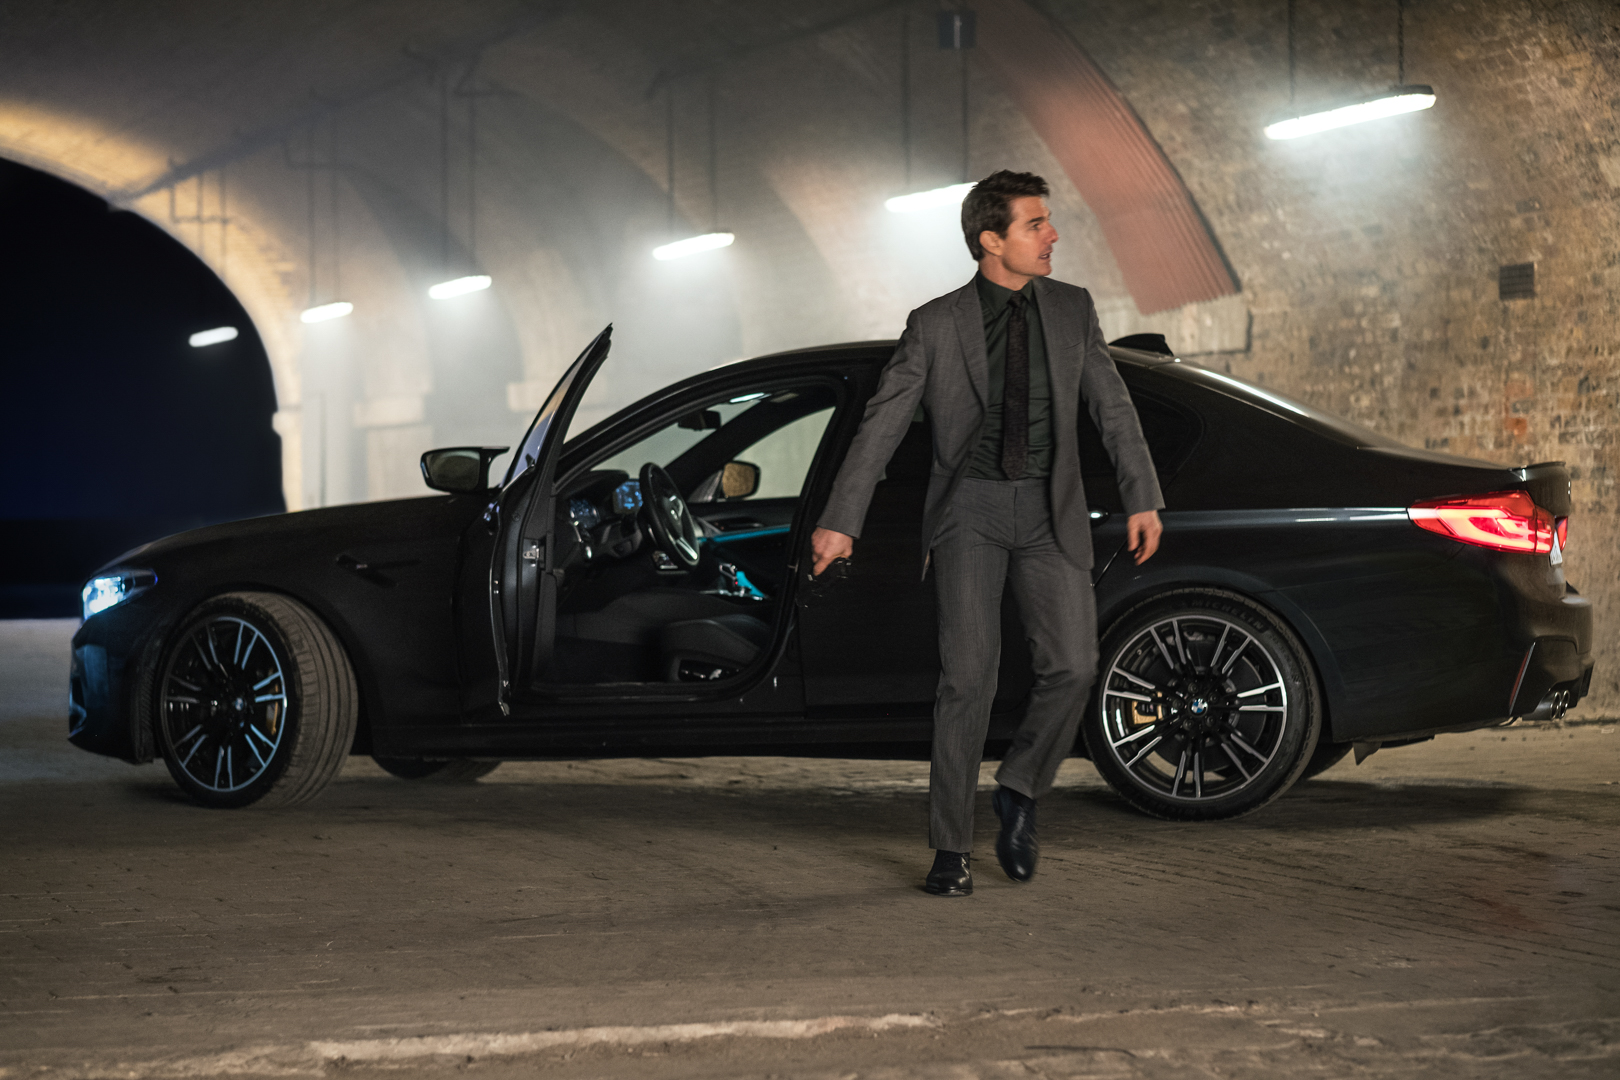 Mission Impossible Fallout BMW M5 2 of 2 1